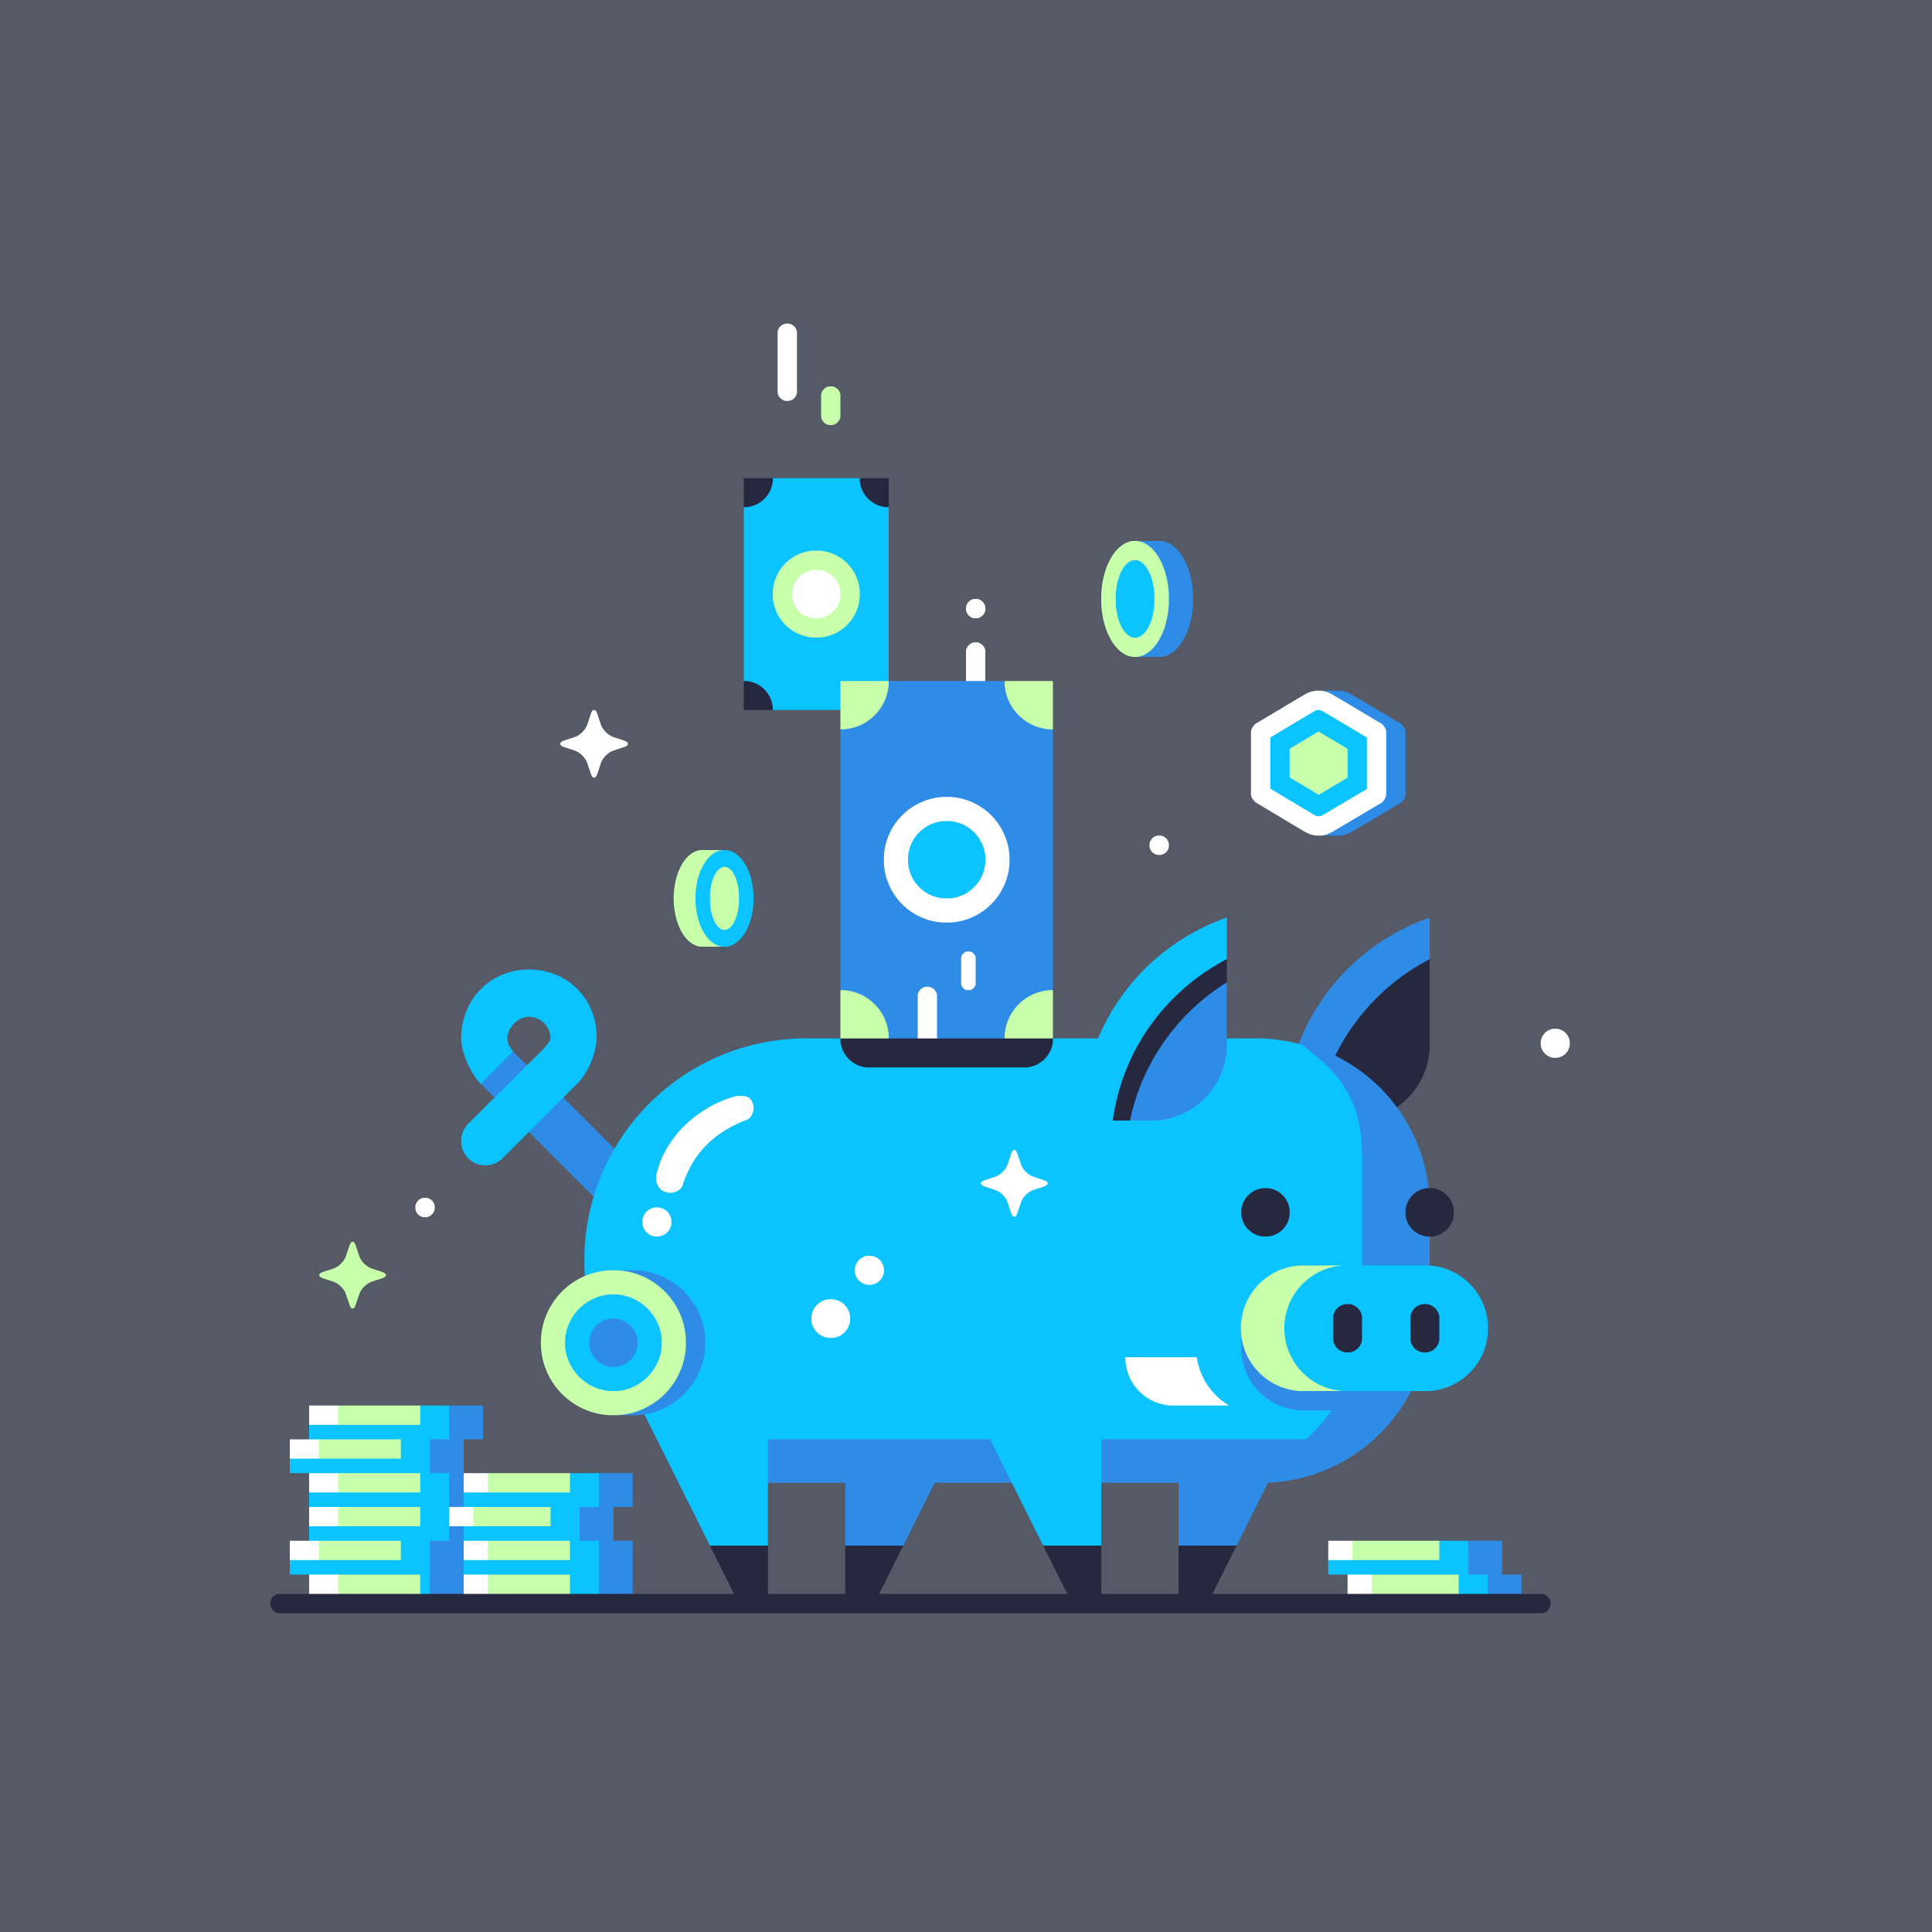 Ui8 piggy bank Illustration designed by Matt Anderson.